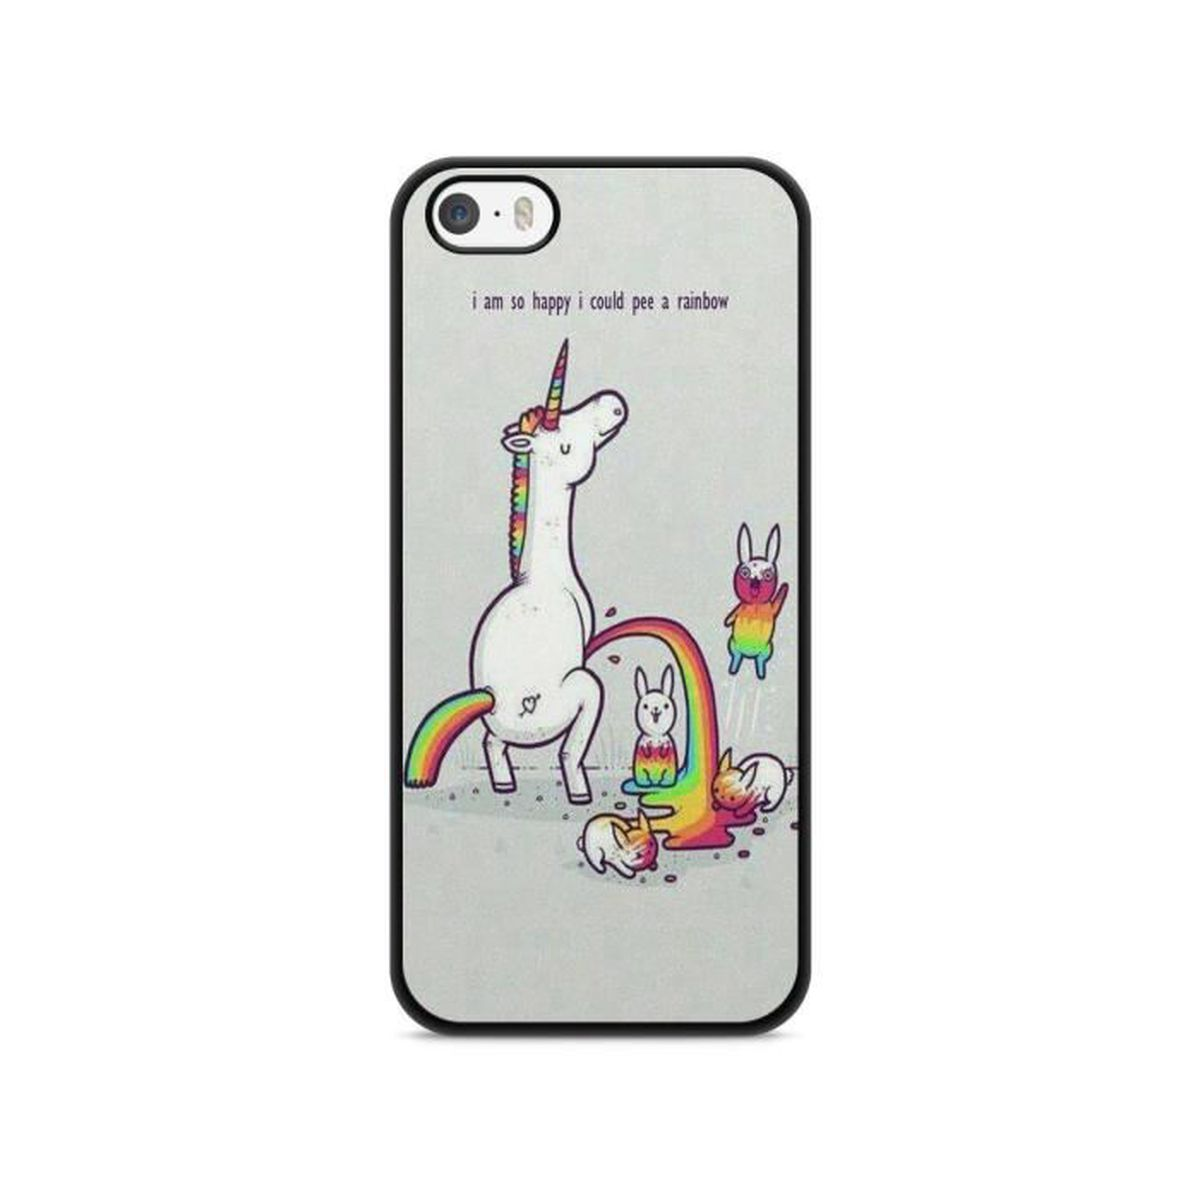 coque iphone 5 5s se licorne fashion unicorn humour hard ref13058 achat coque bumper pas. Black Bedroom Furniture Sets. Home Design Ideas